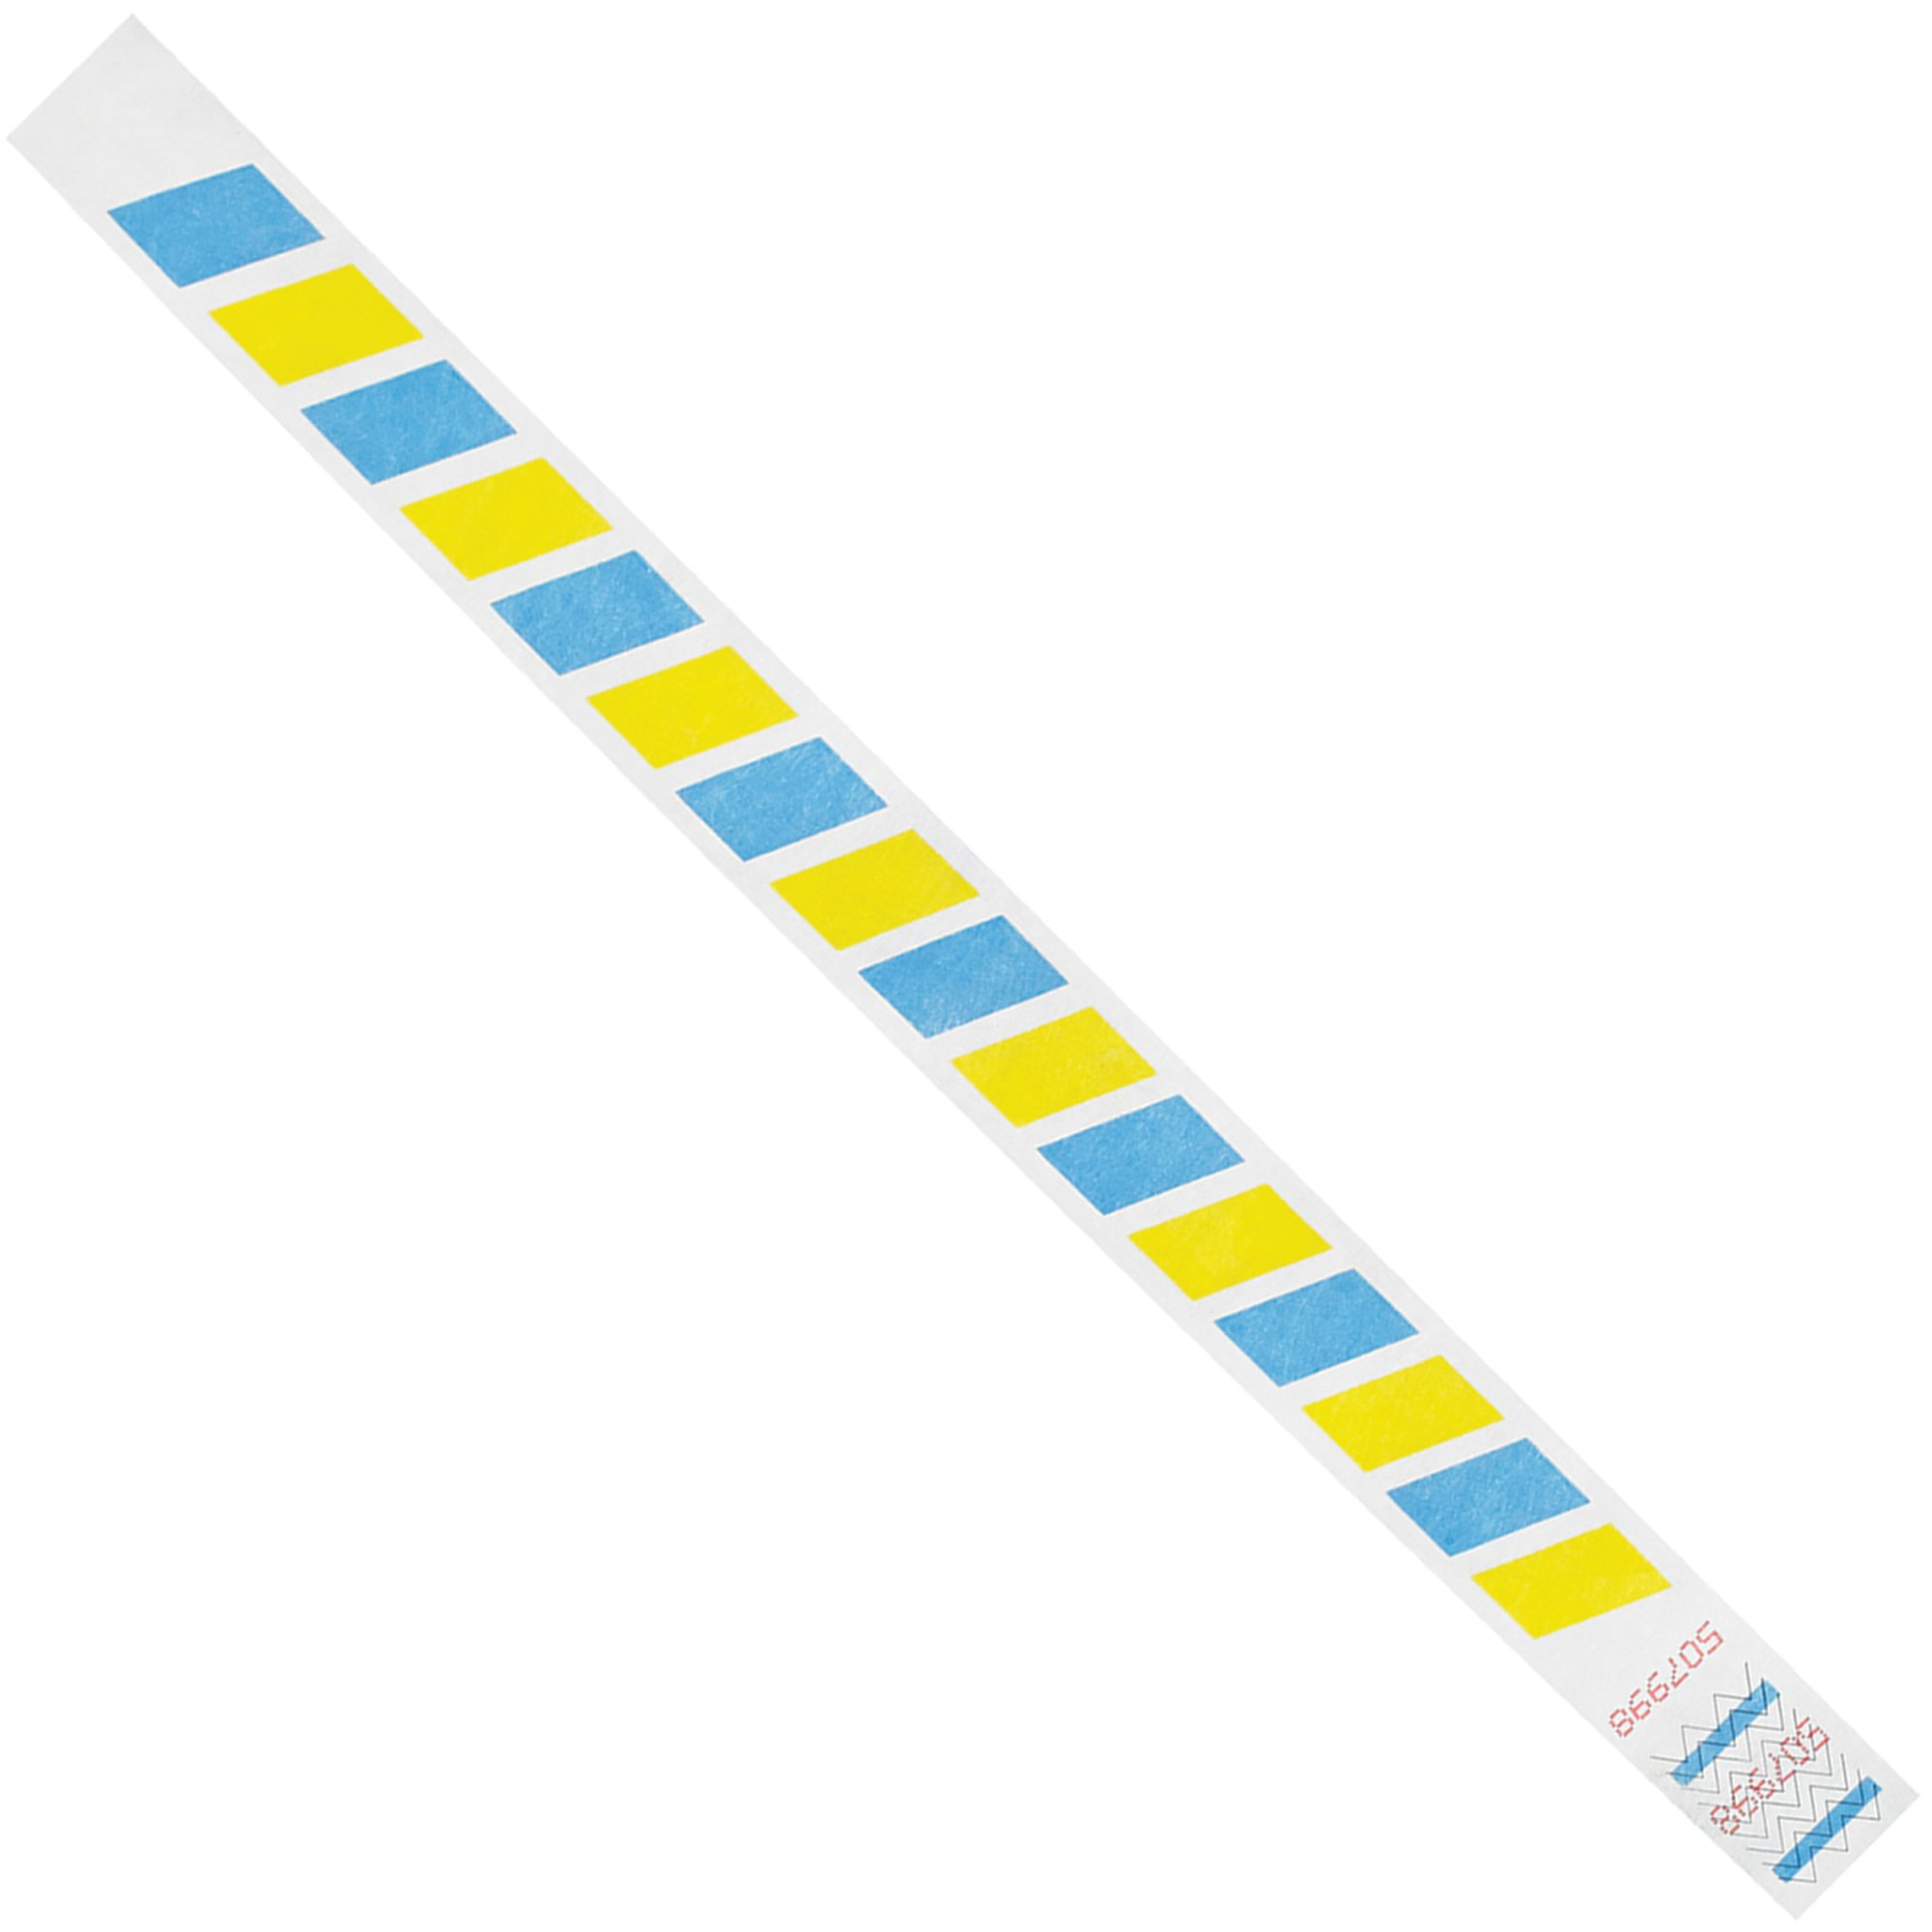 Top Pack Supply Tyvek Wristbands, 3/4'' x 10'', Stripes, Blue/Yellow (Pack of 500)